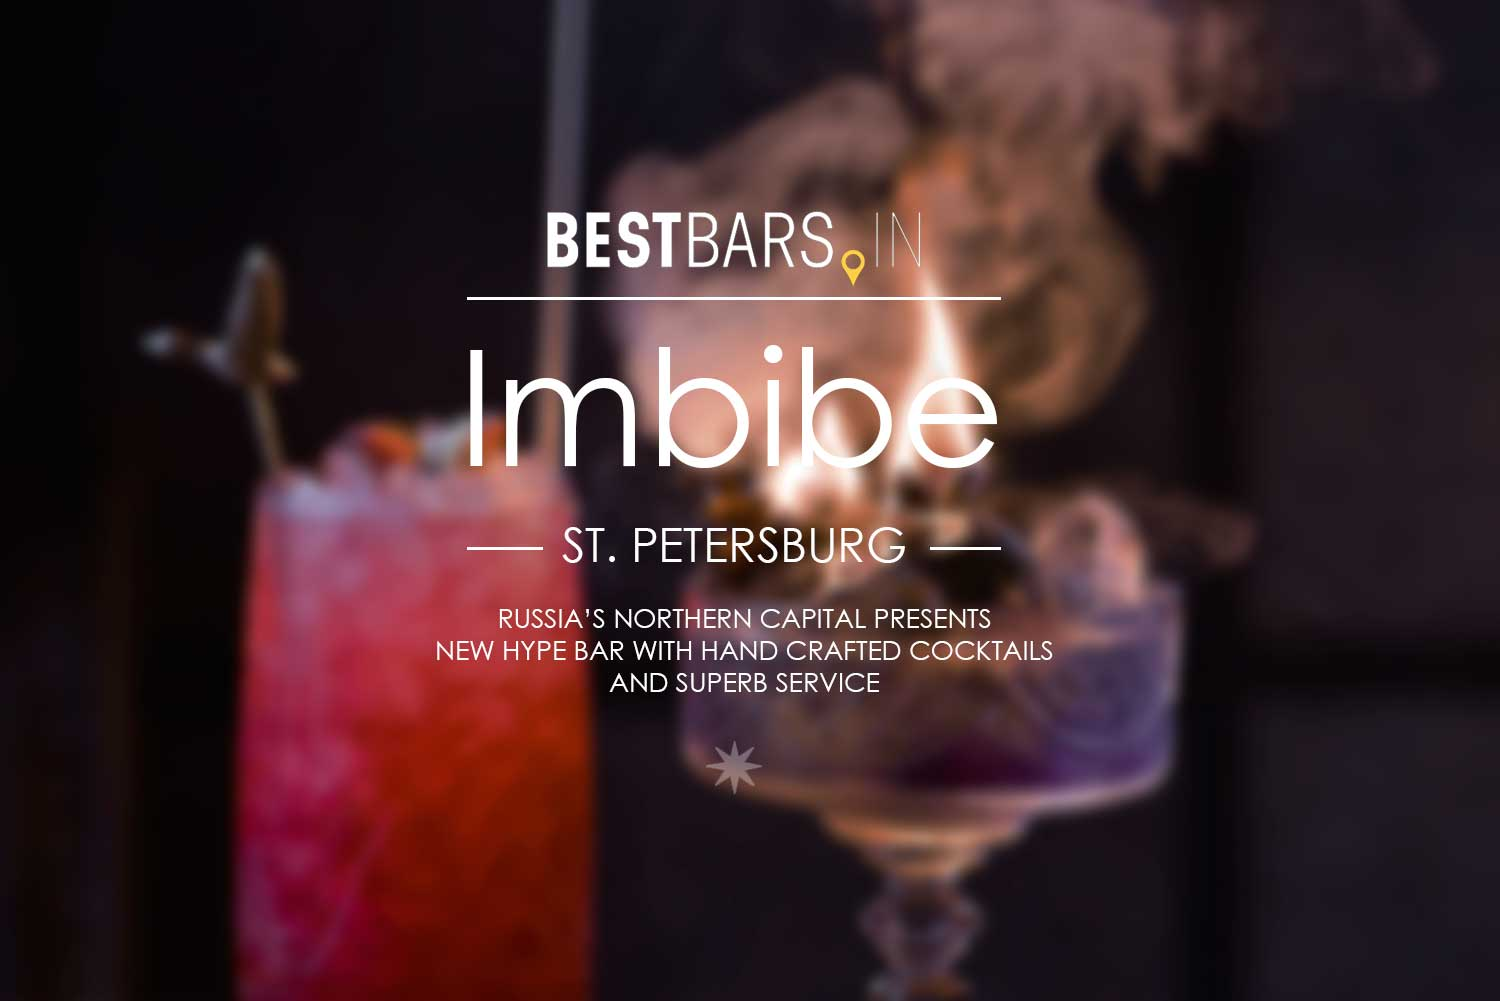 Imbibe - new trending cocktail bar in Saint Petersburg